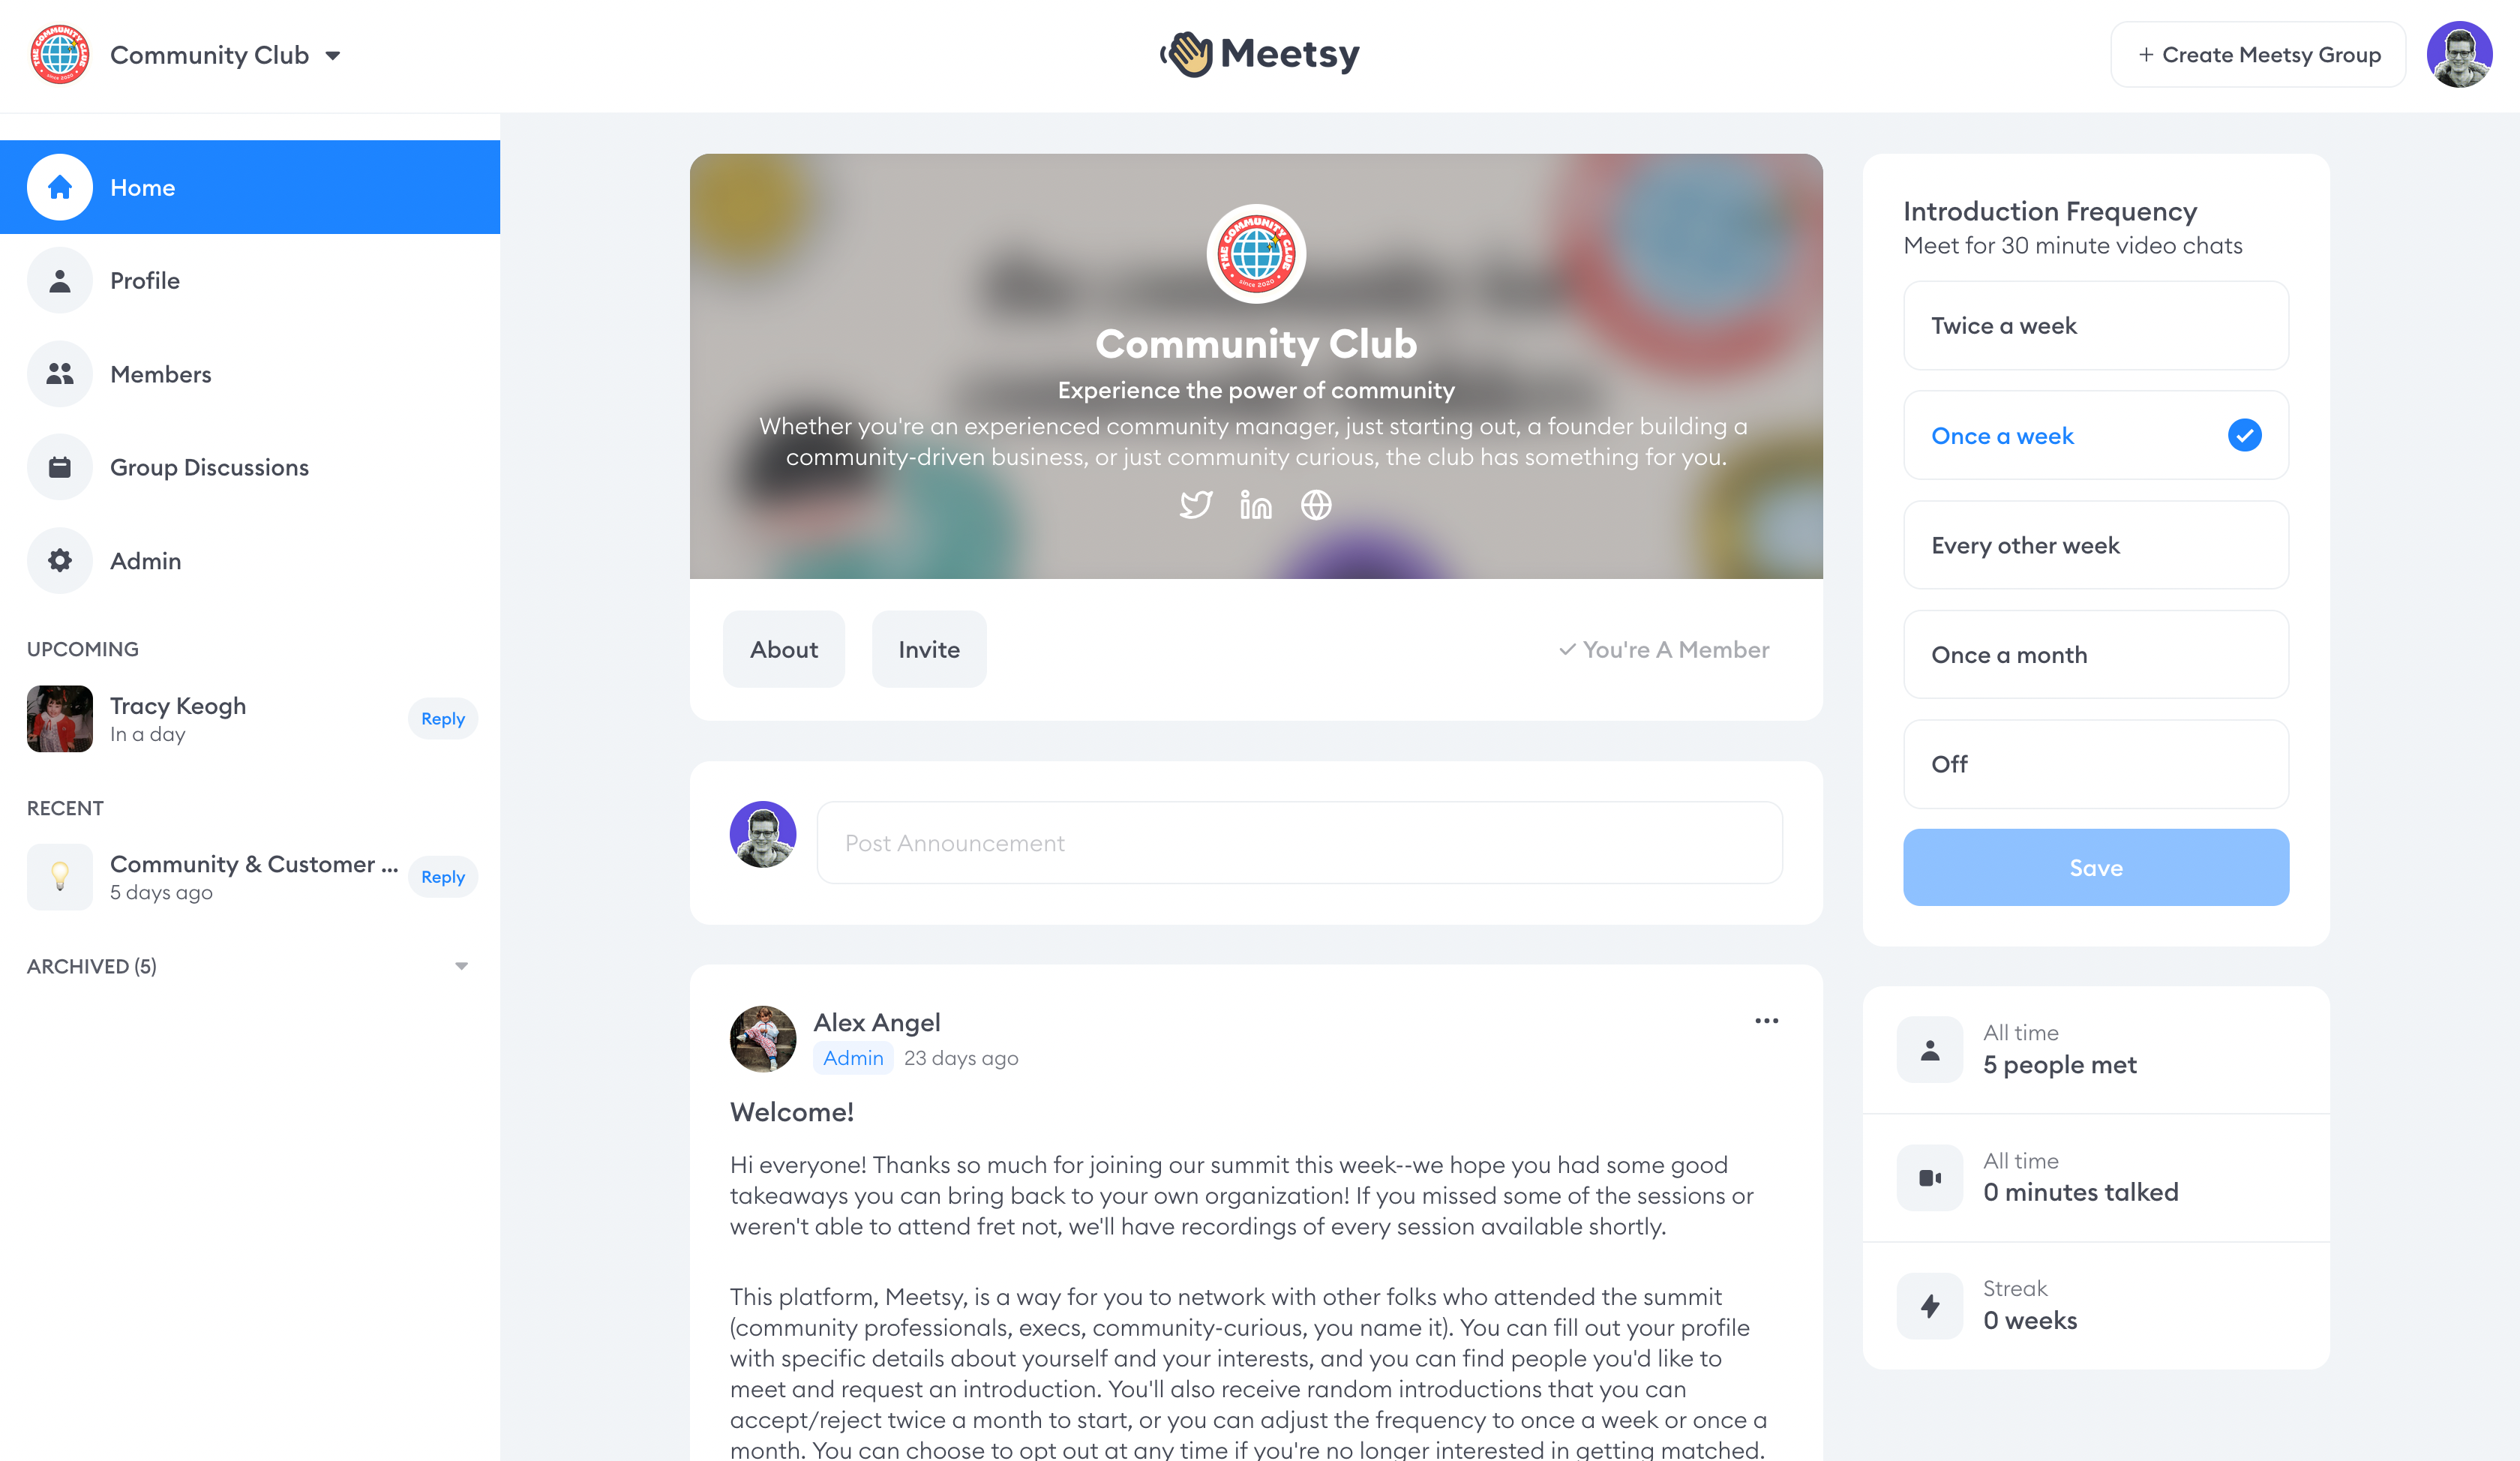 A view of The Community Club's Meetsy dashboard.